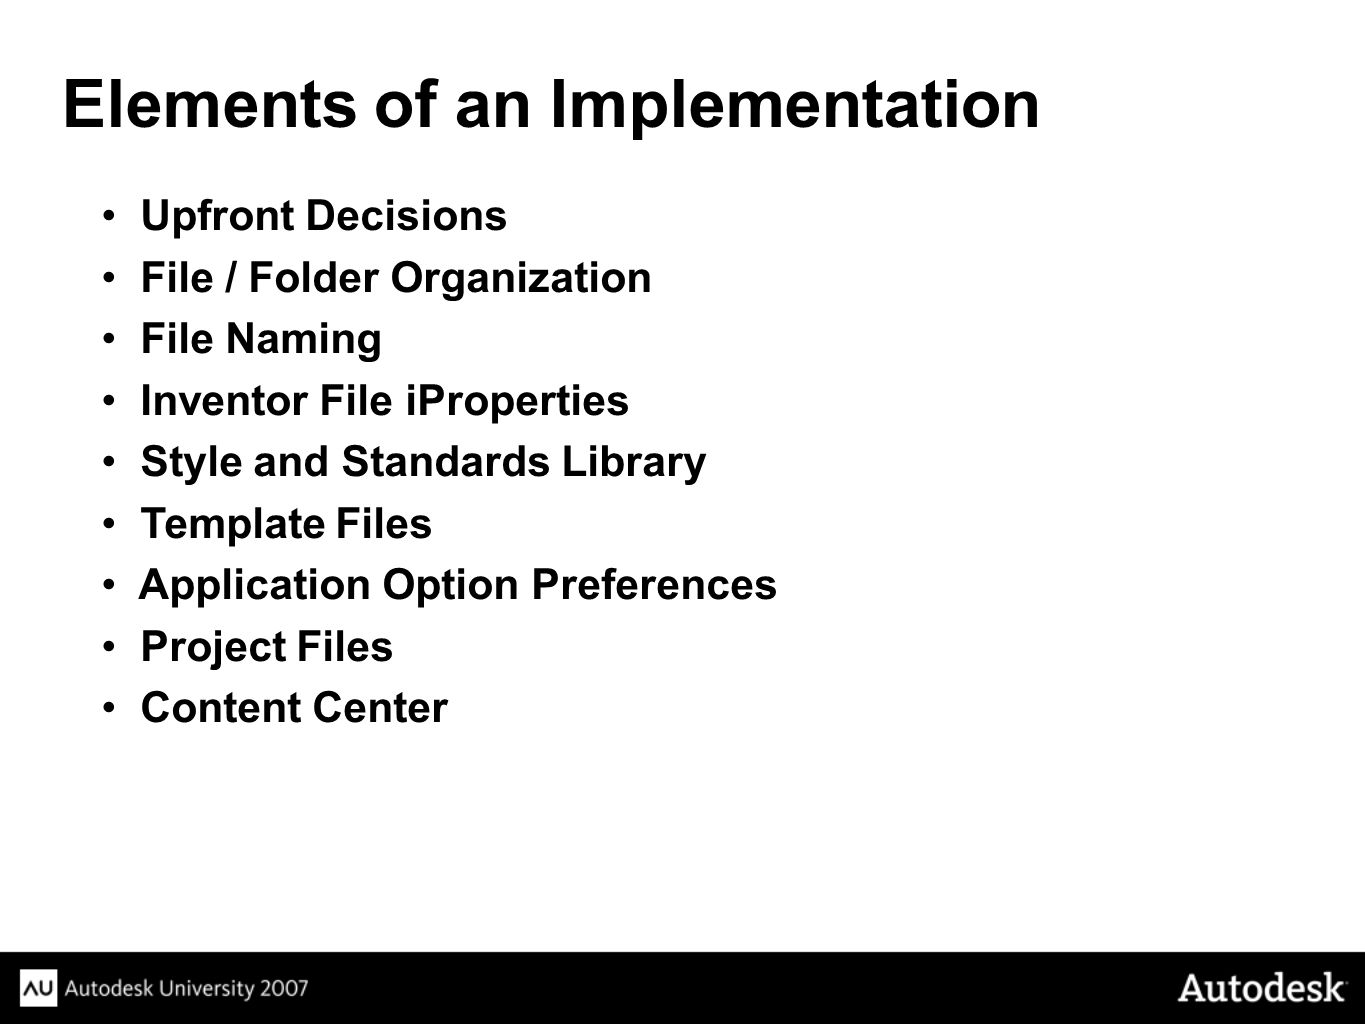 Elements of an Implementation